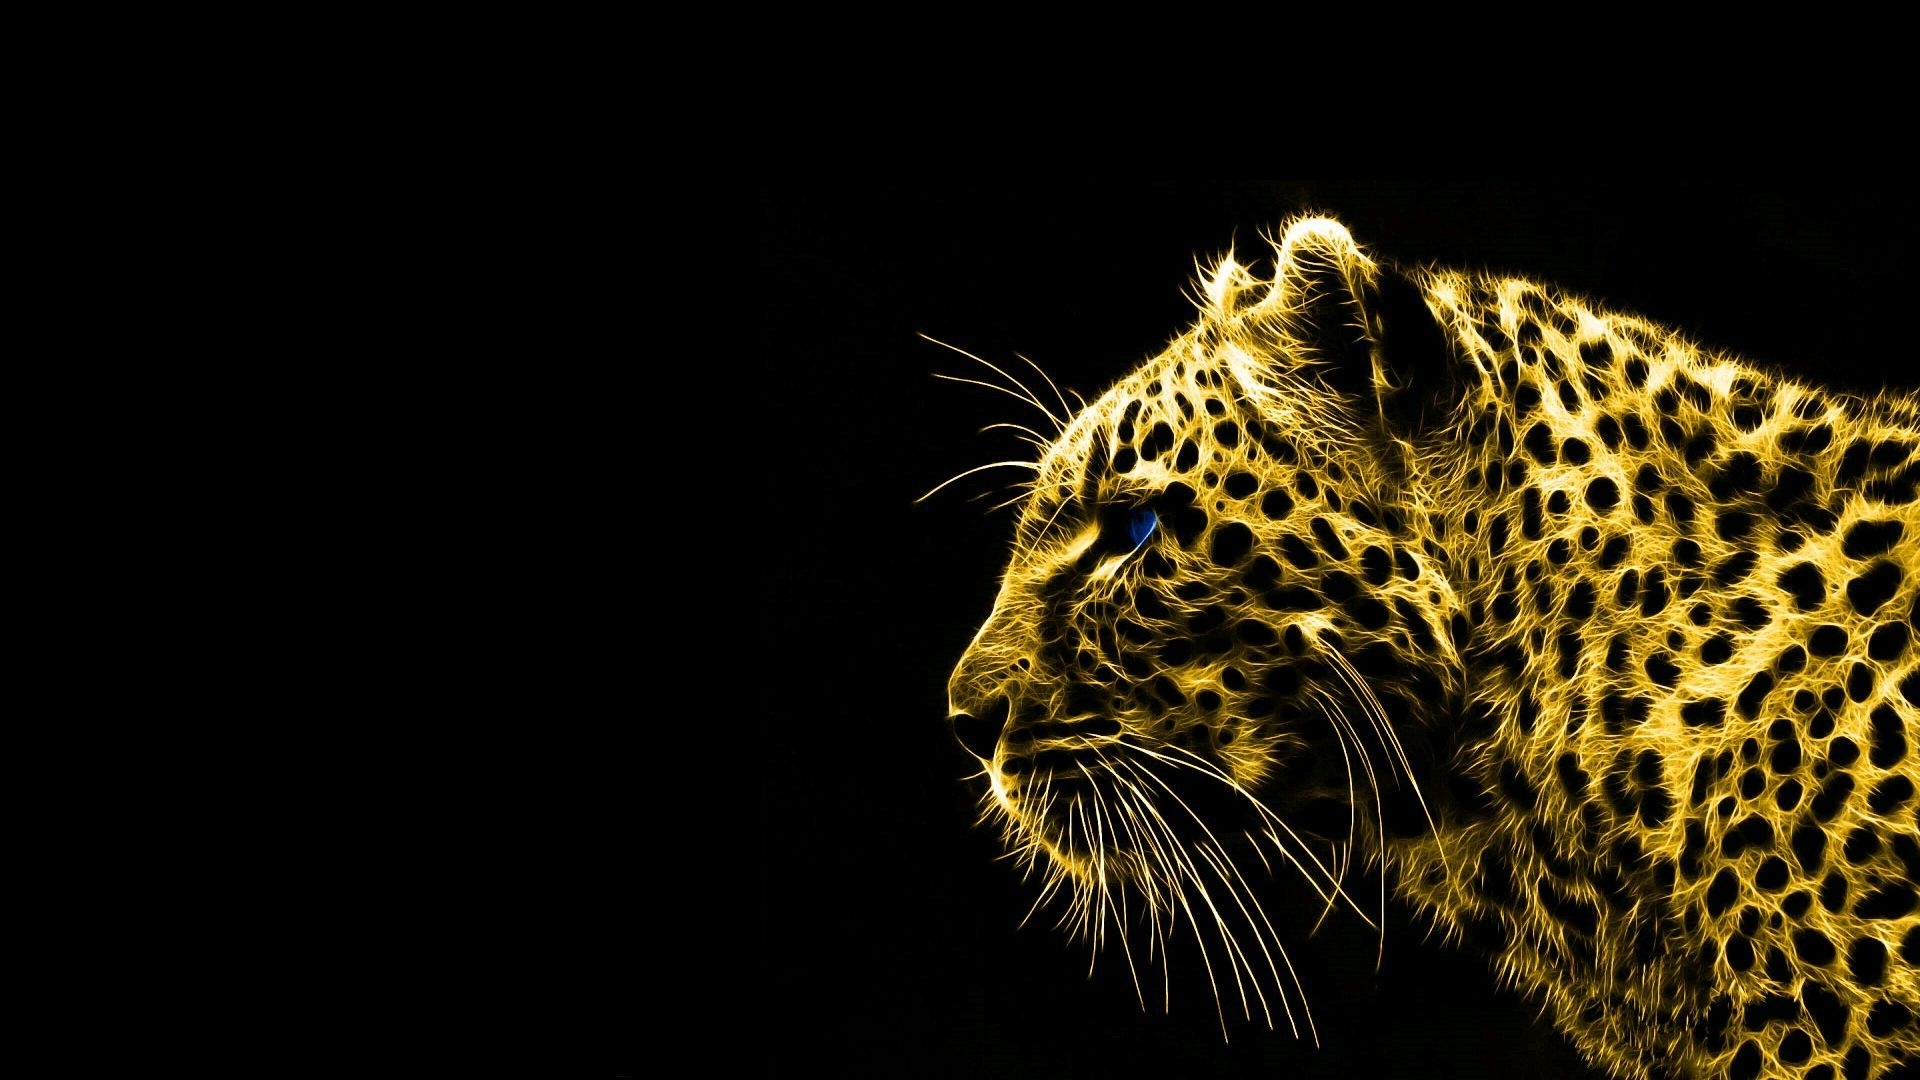 and gold wallpapers, 1920x1080 – wallpapers pc gallery for desktop